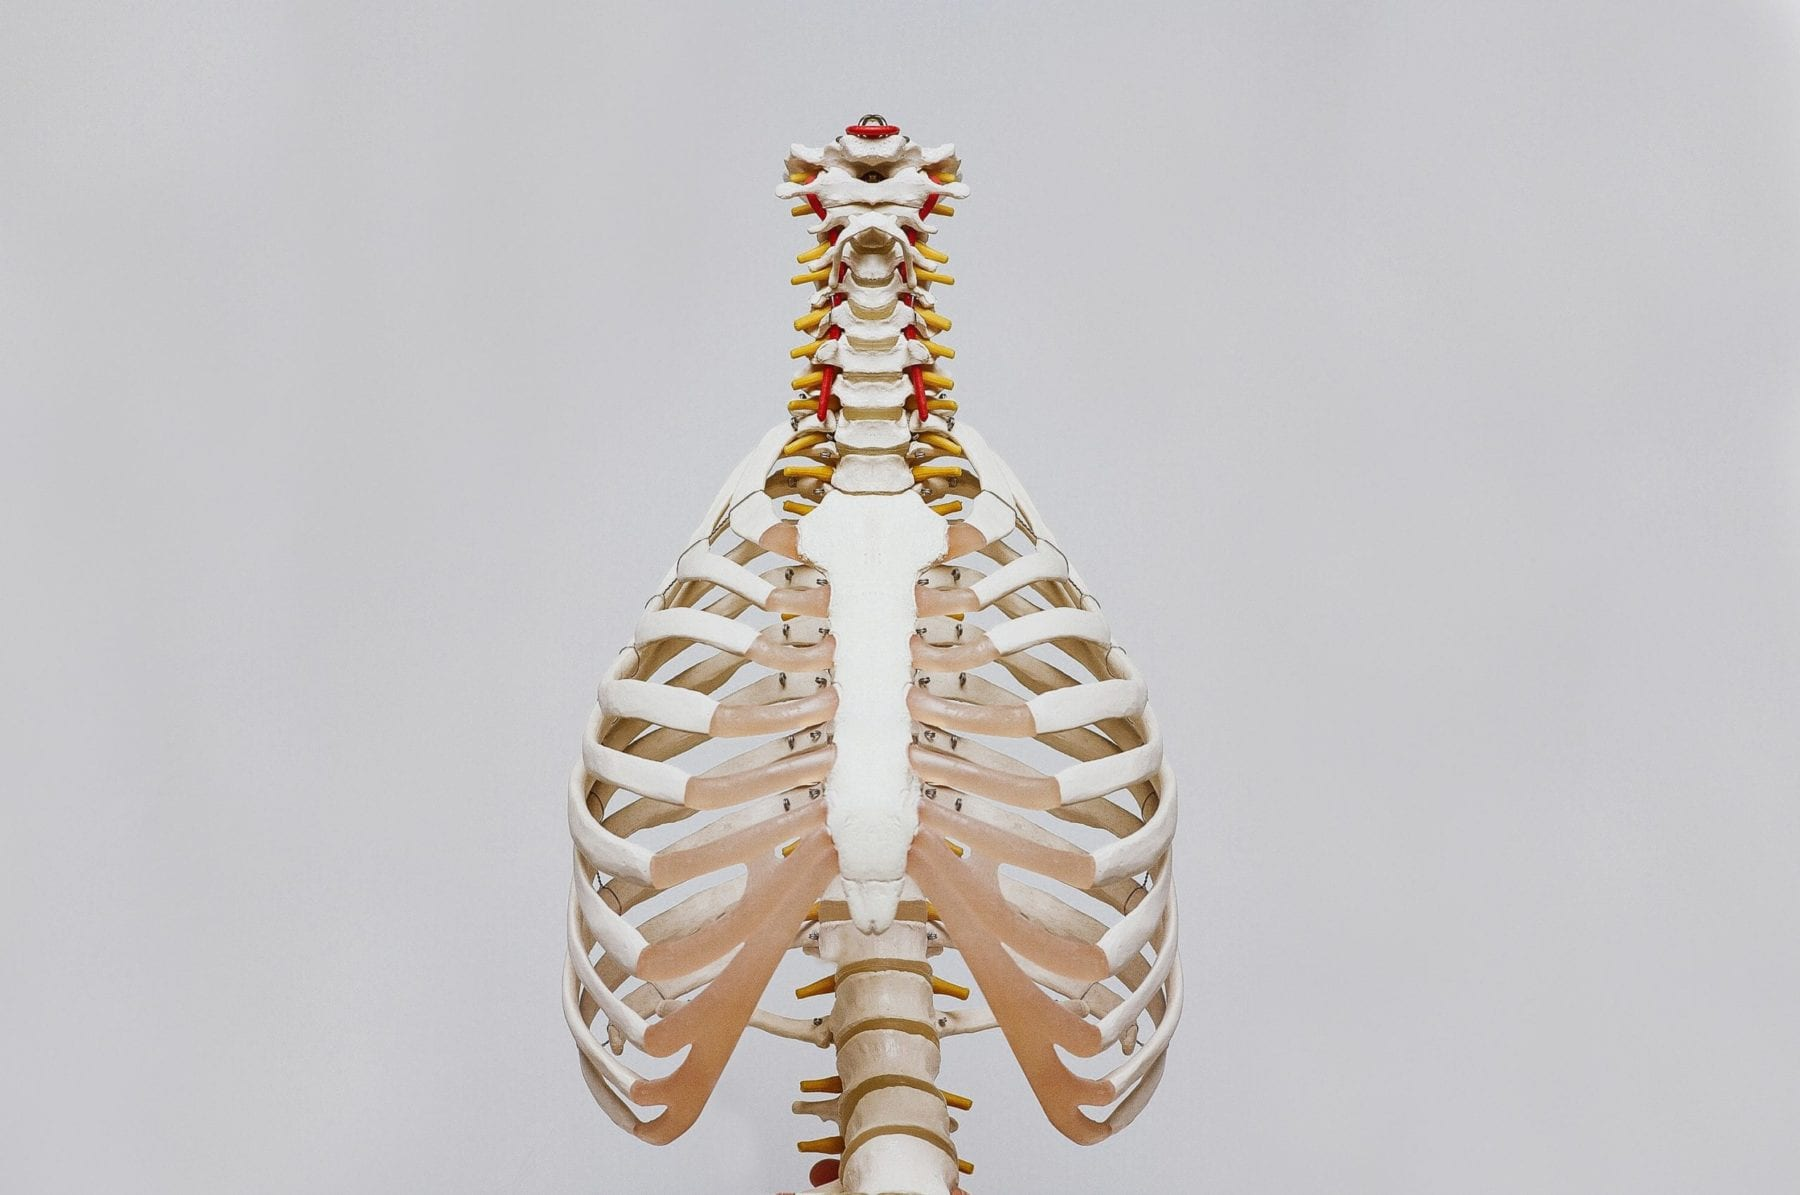 Explore the human body in an interesting and interactive way